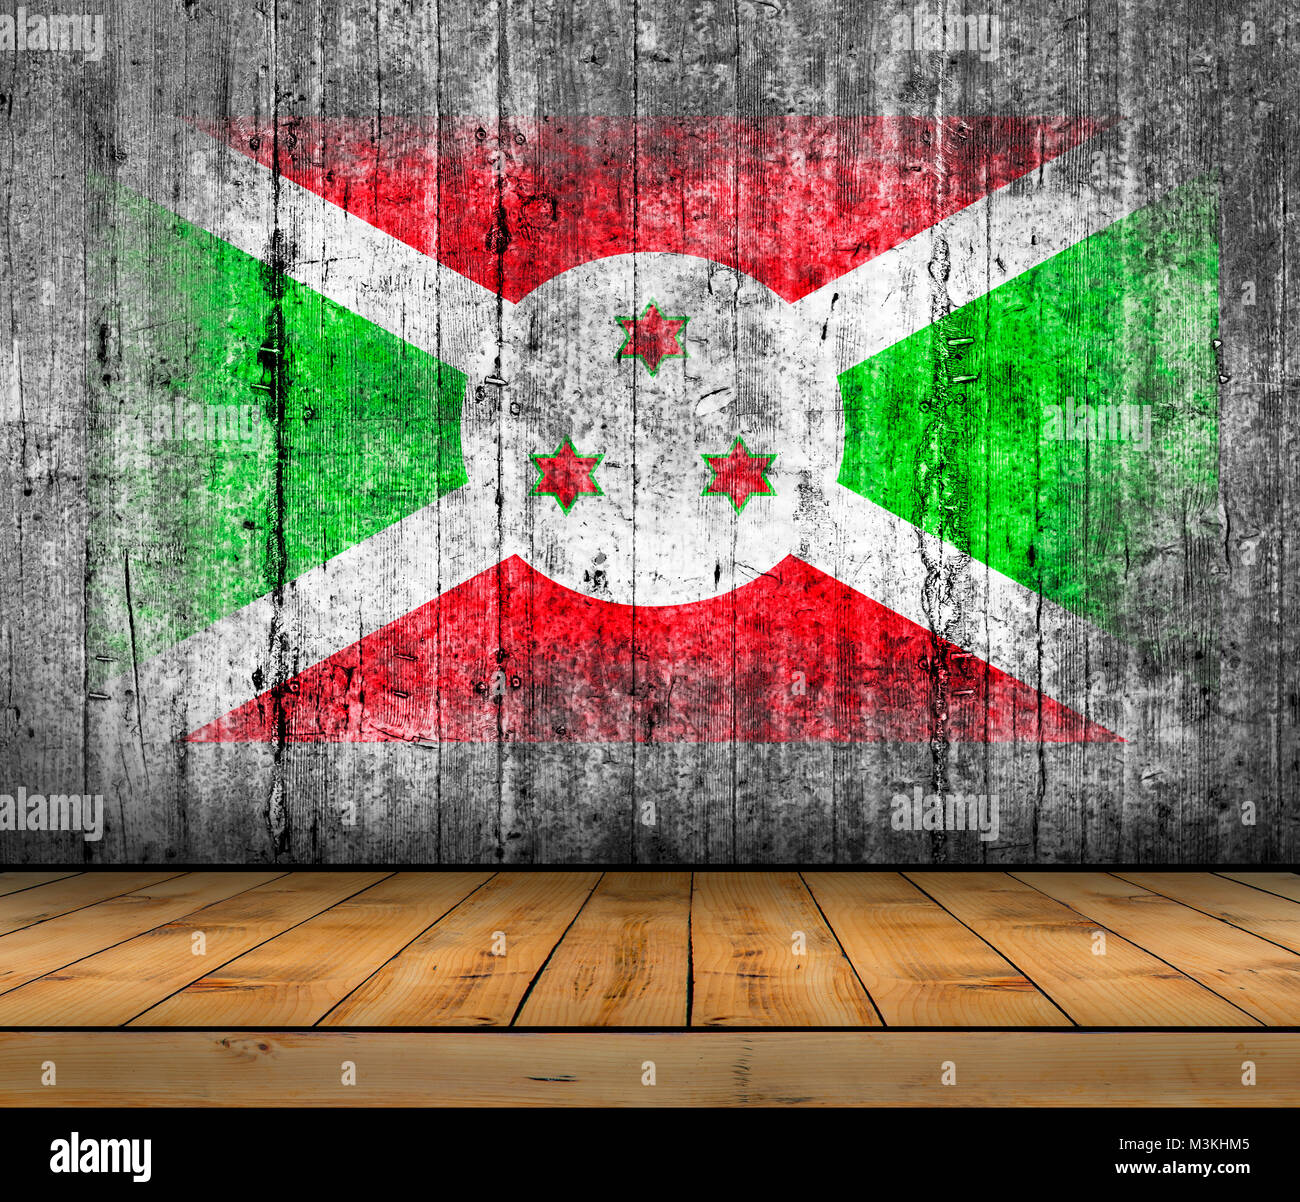 Burundi flag painted on background texture gray concrete with wooden floor - Stock Image